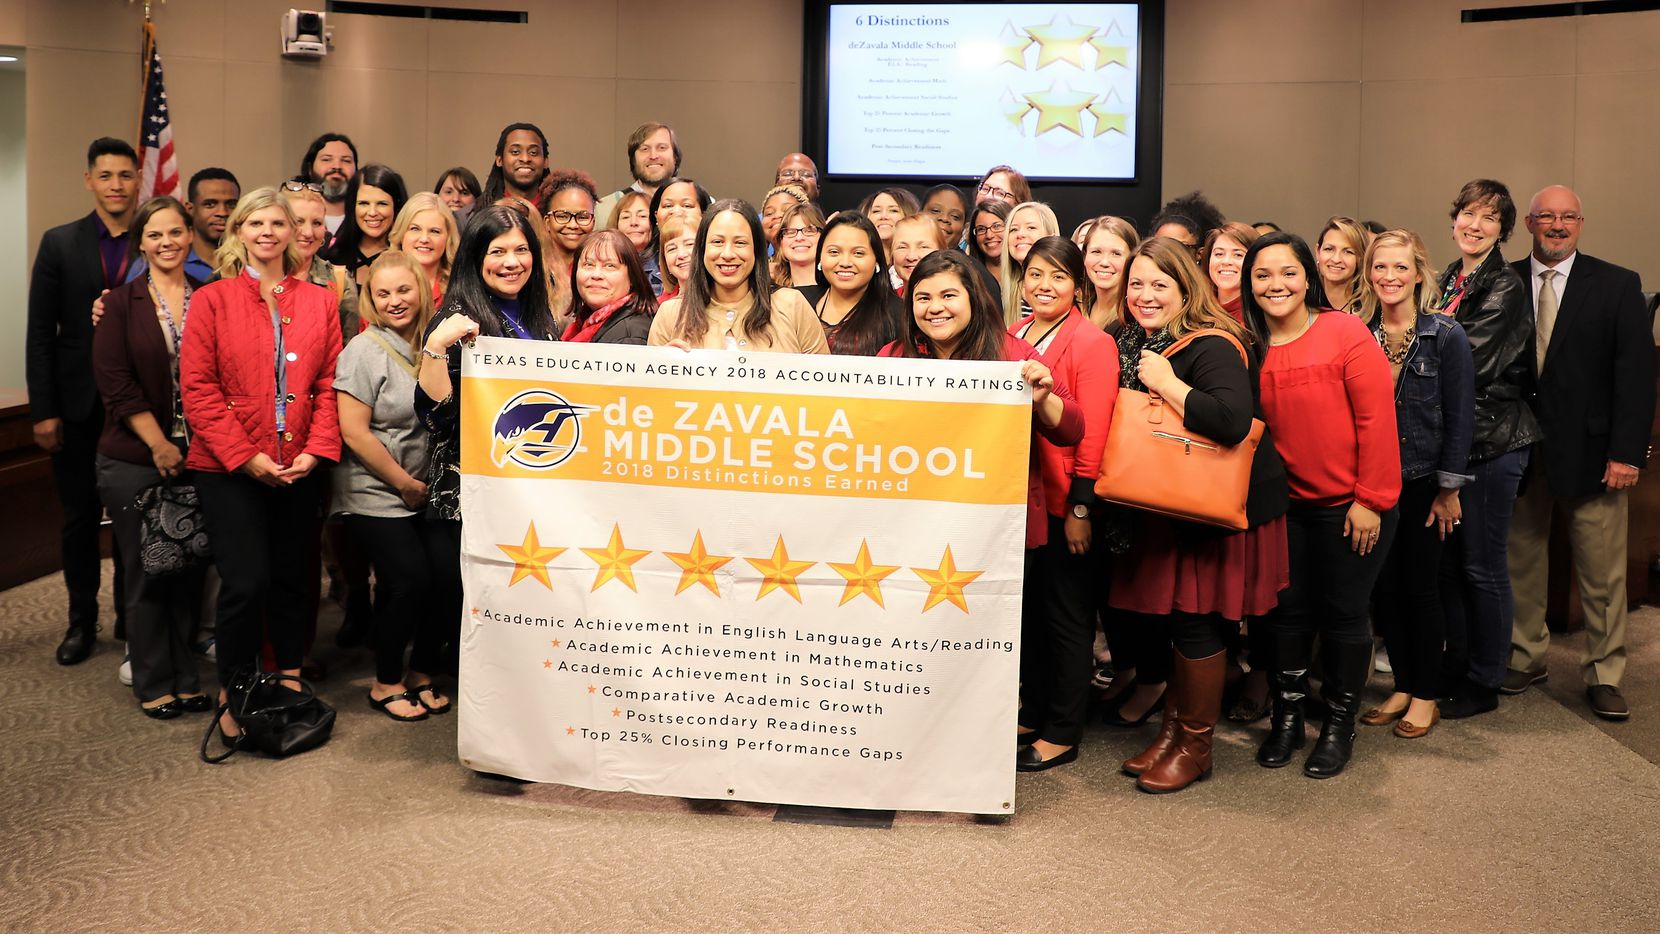 De Zavala Middle School in Irving celebrates earning six distinctions from the Texas Education Agency. Photo from Irving ISD.